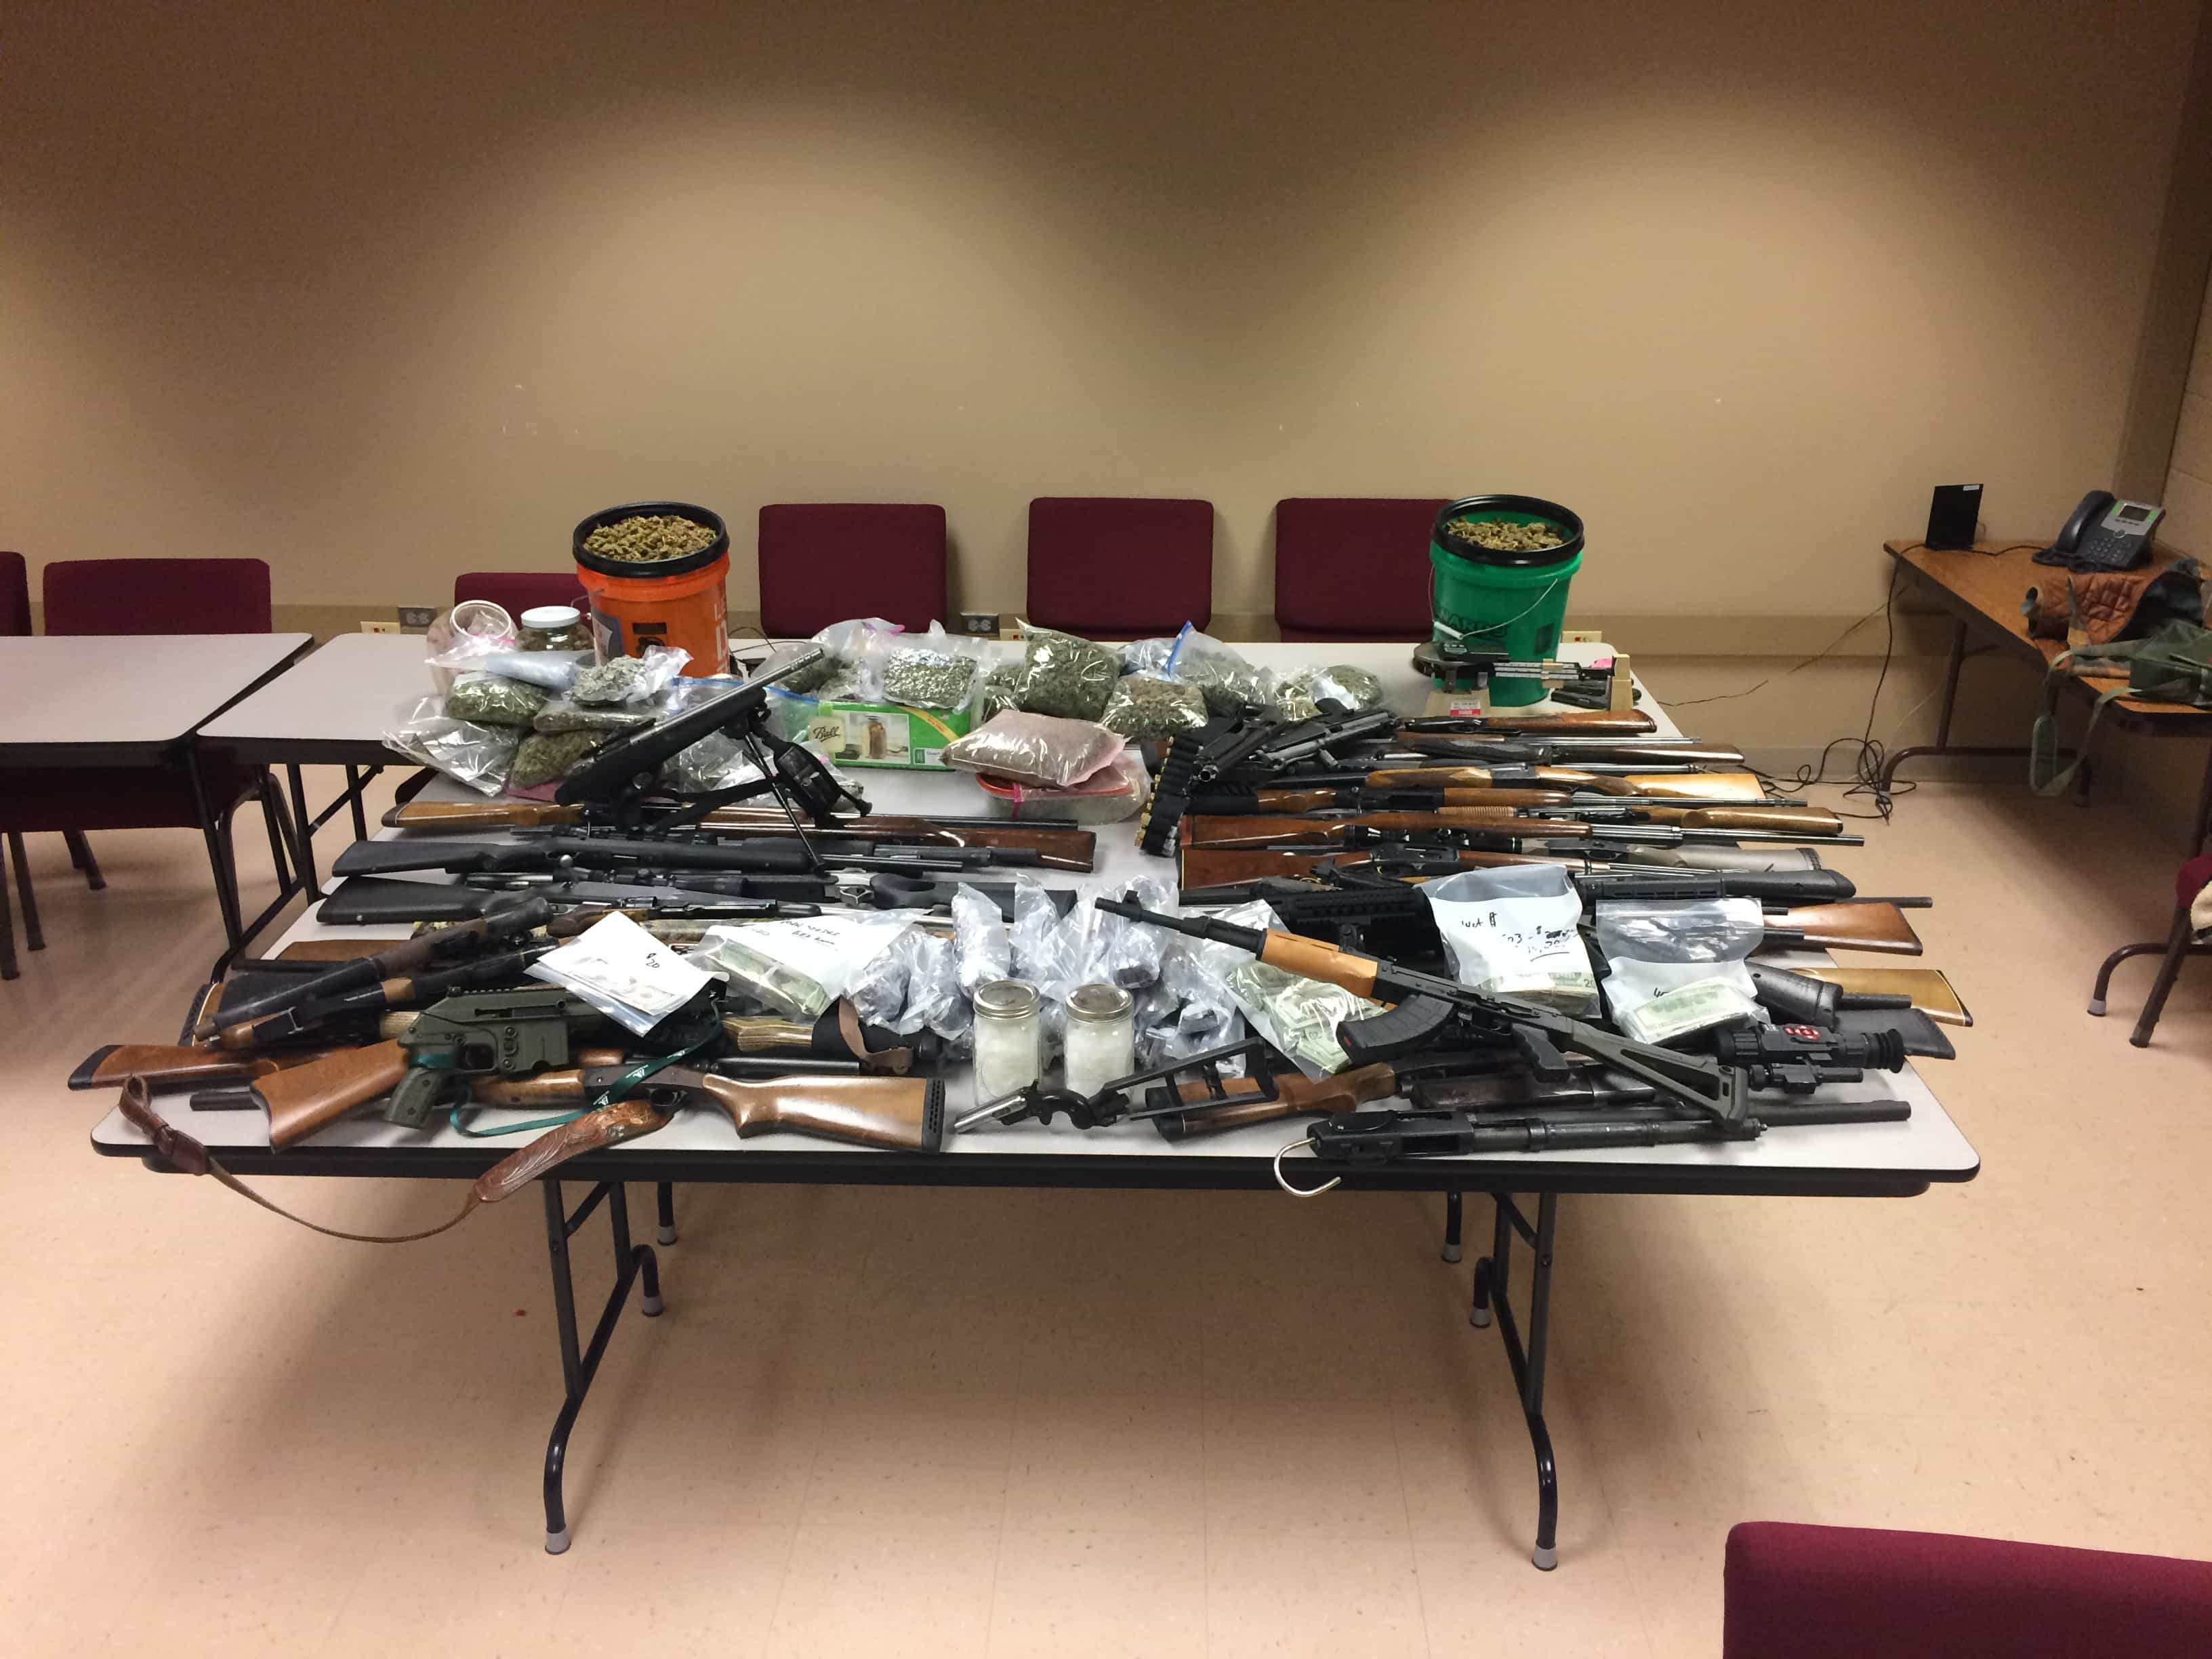 Four arrested, $80,000 found in Noble County drug bust - WOWO 1190